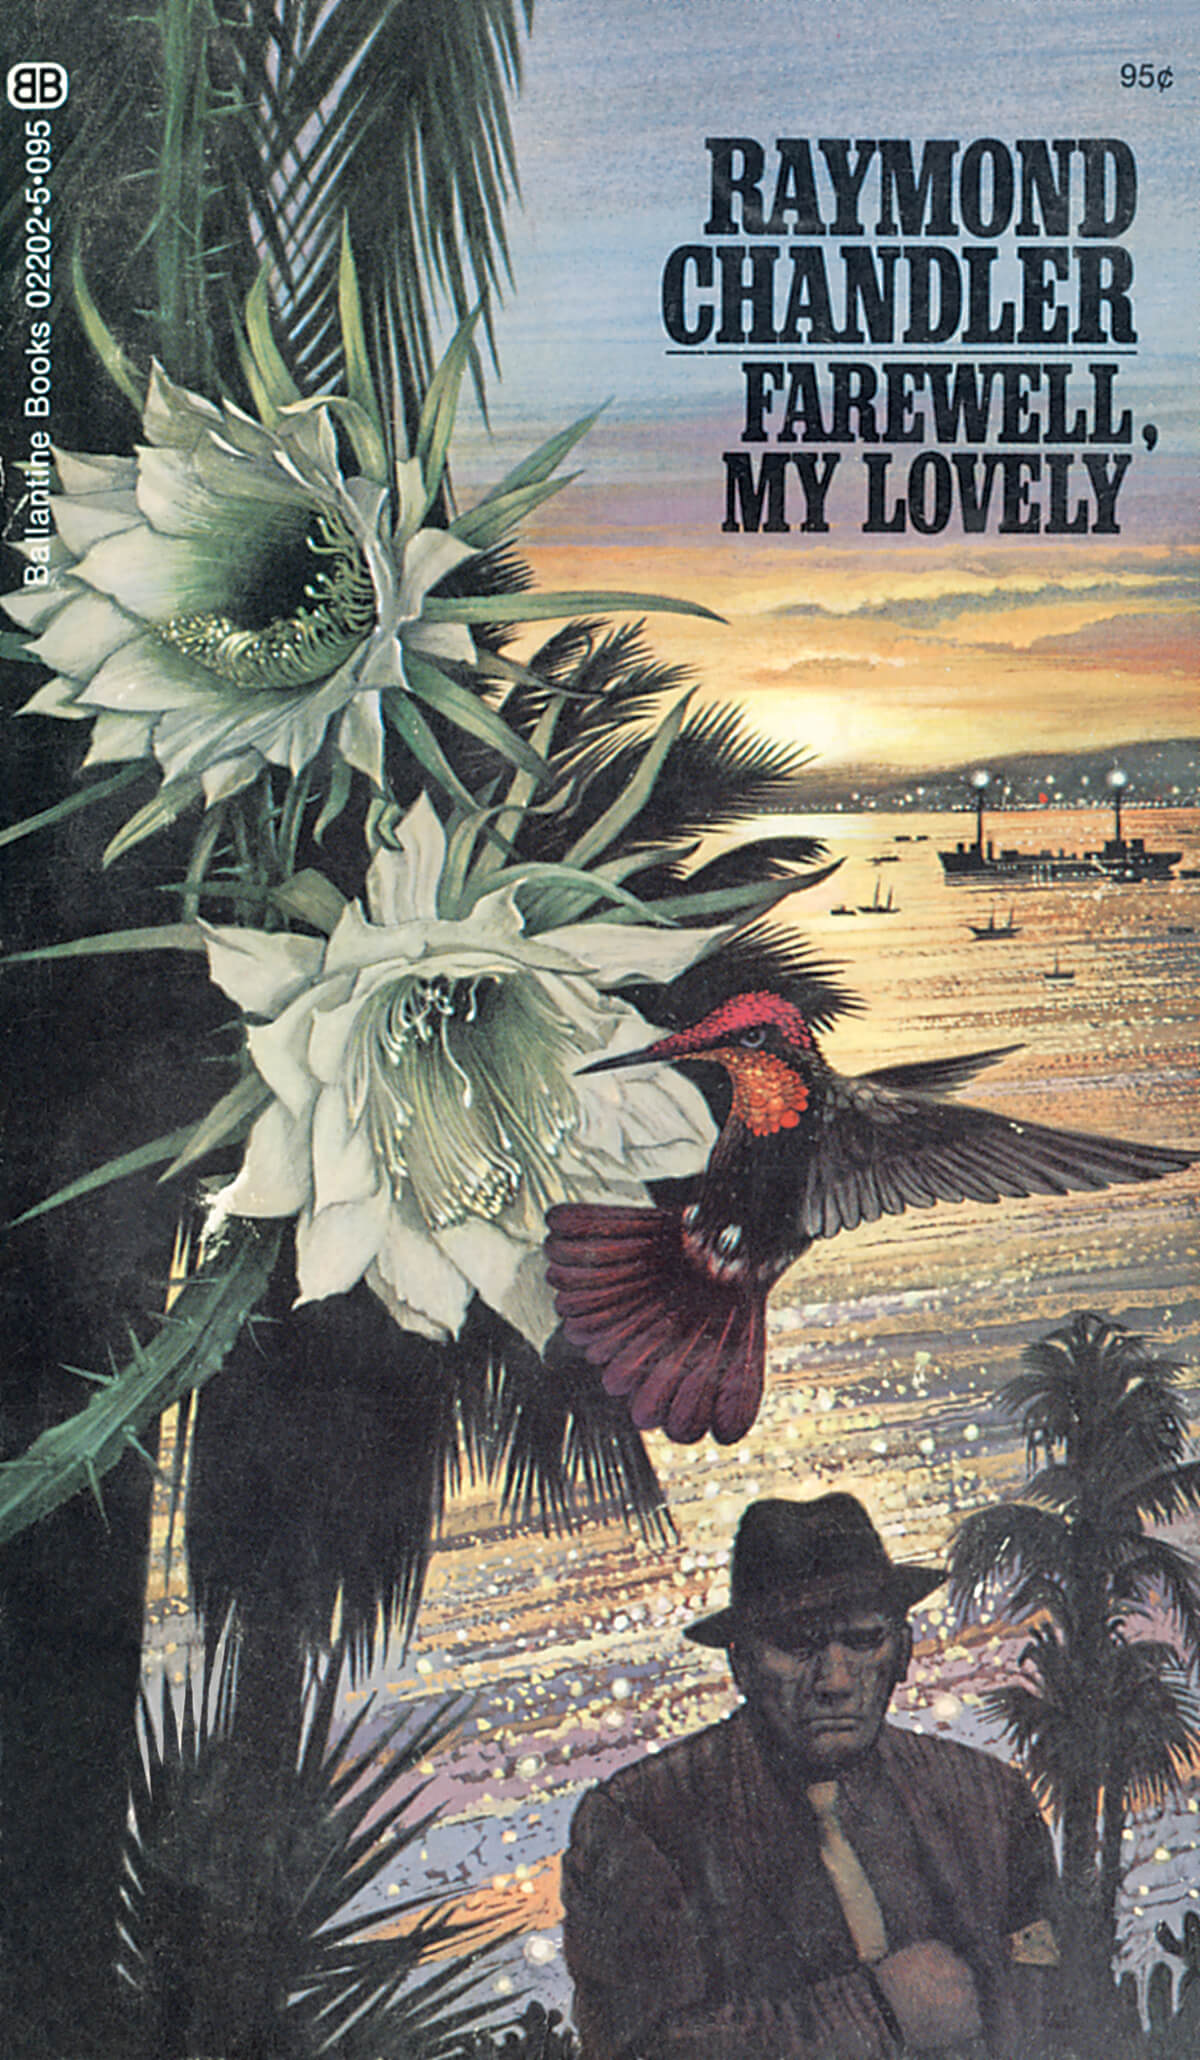 Farewell My Lovely by Raymond Chandler, Cover by Tom Adams